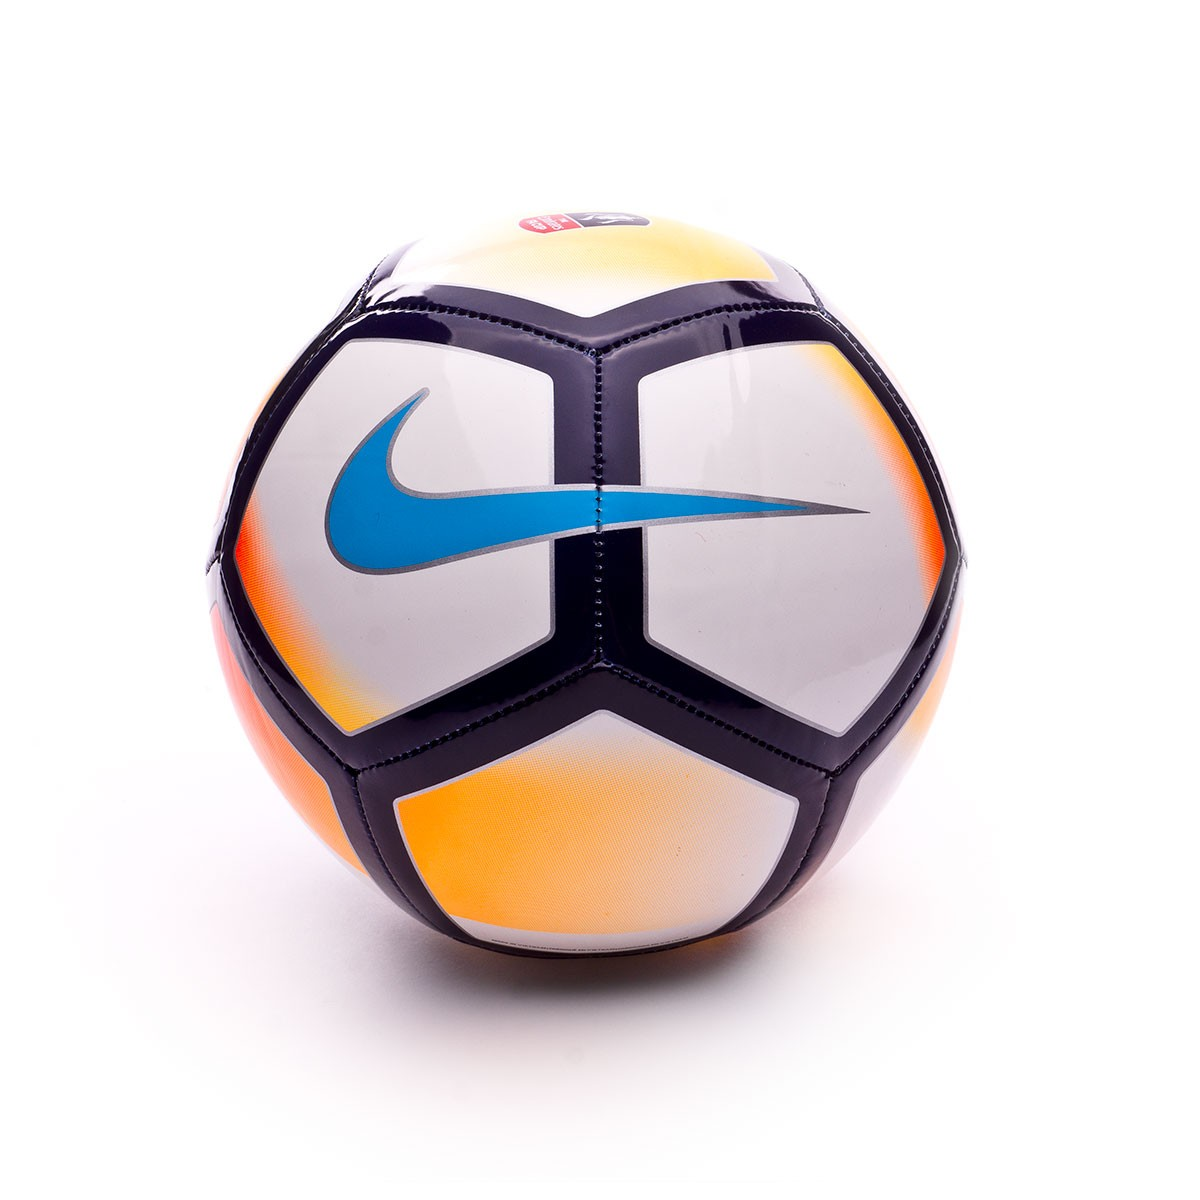 326ed01cc Ball Nike FA Cup Pitch Football White-Bright mango-Chlorine blue - Tienda  de fútbol Fútbol Emotion